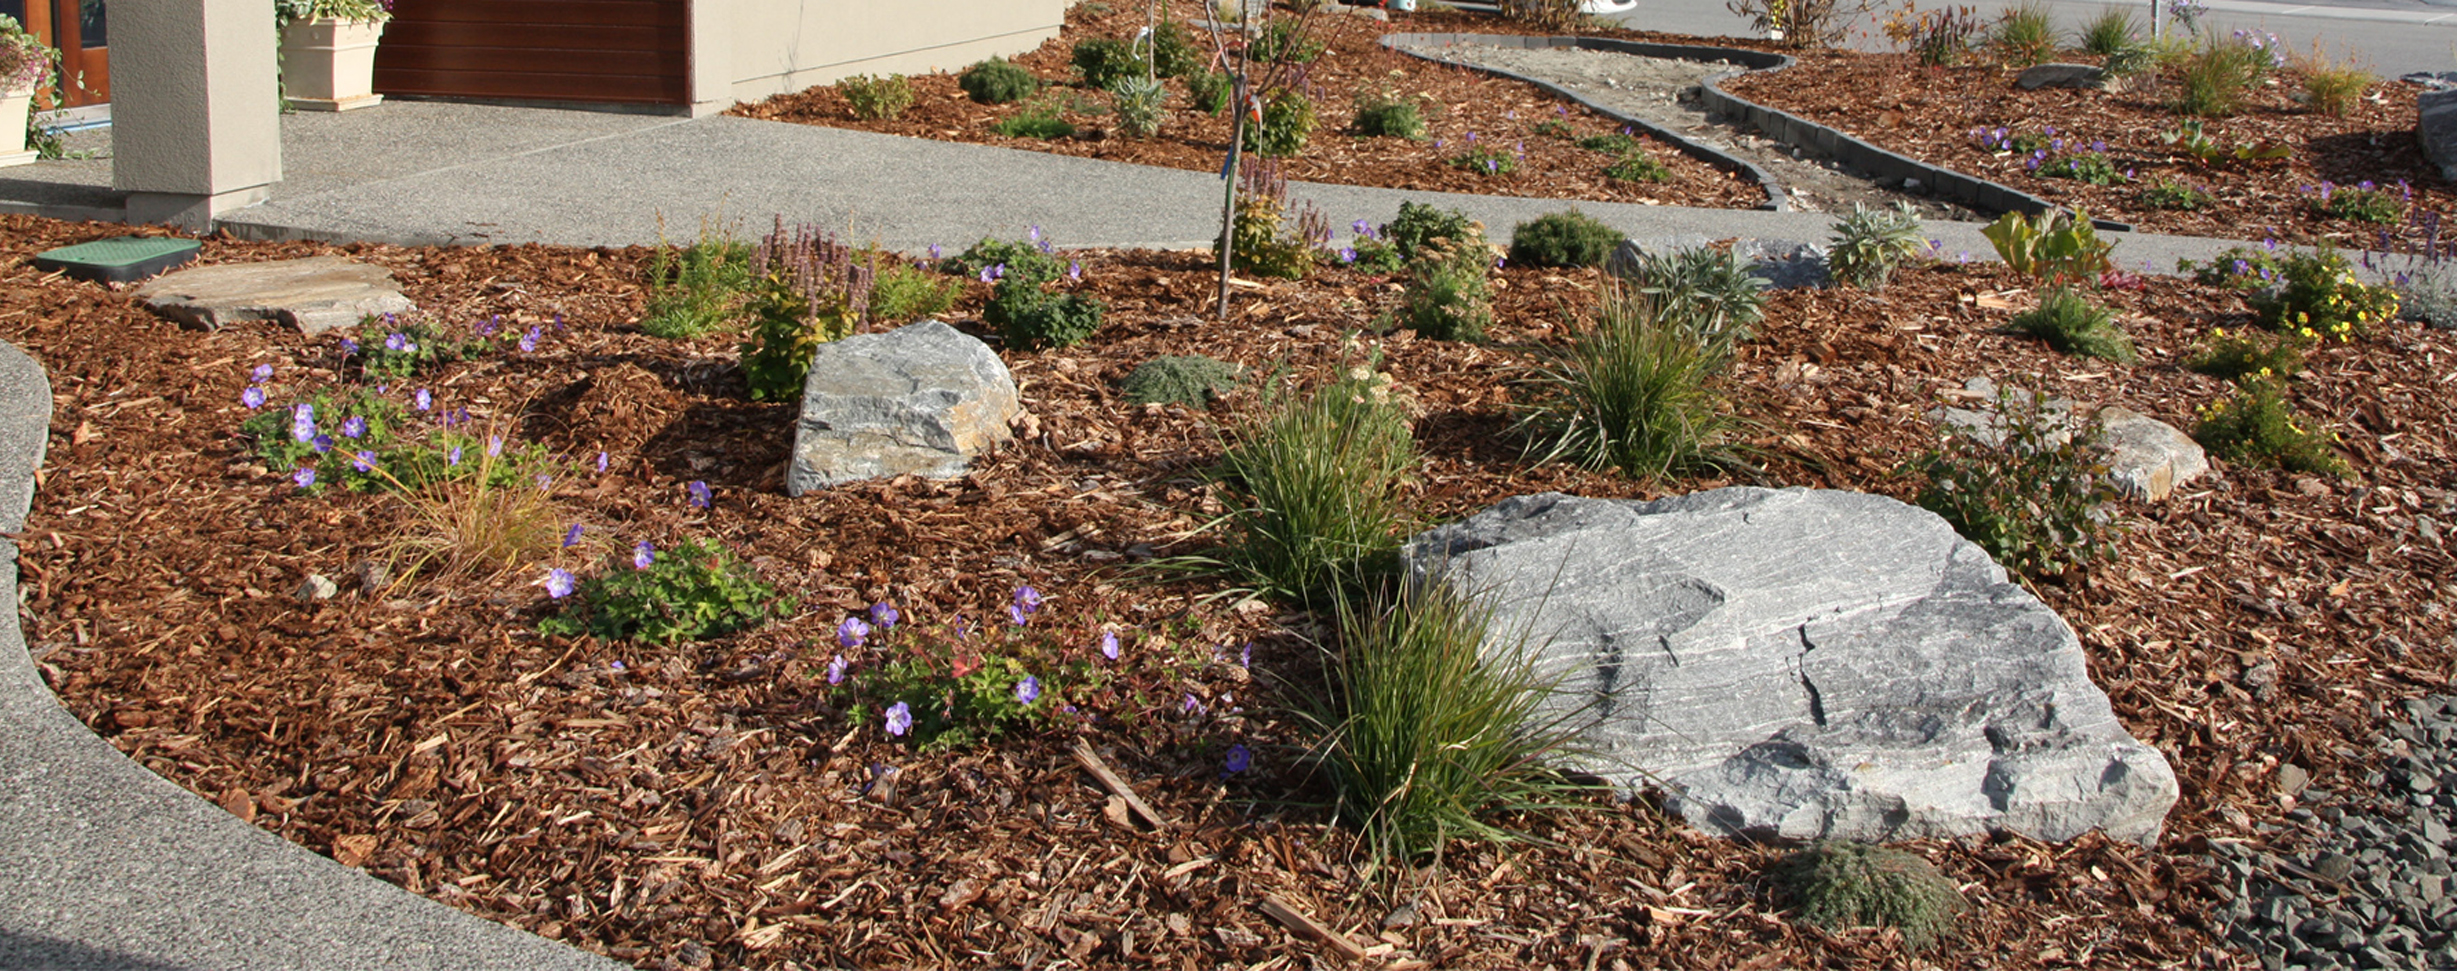 Newly planted edible & bee-friendly landscape